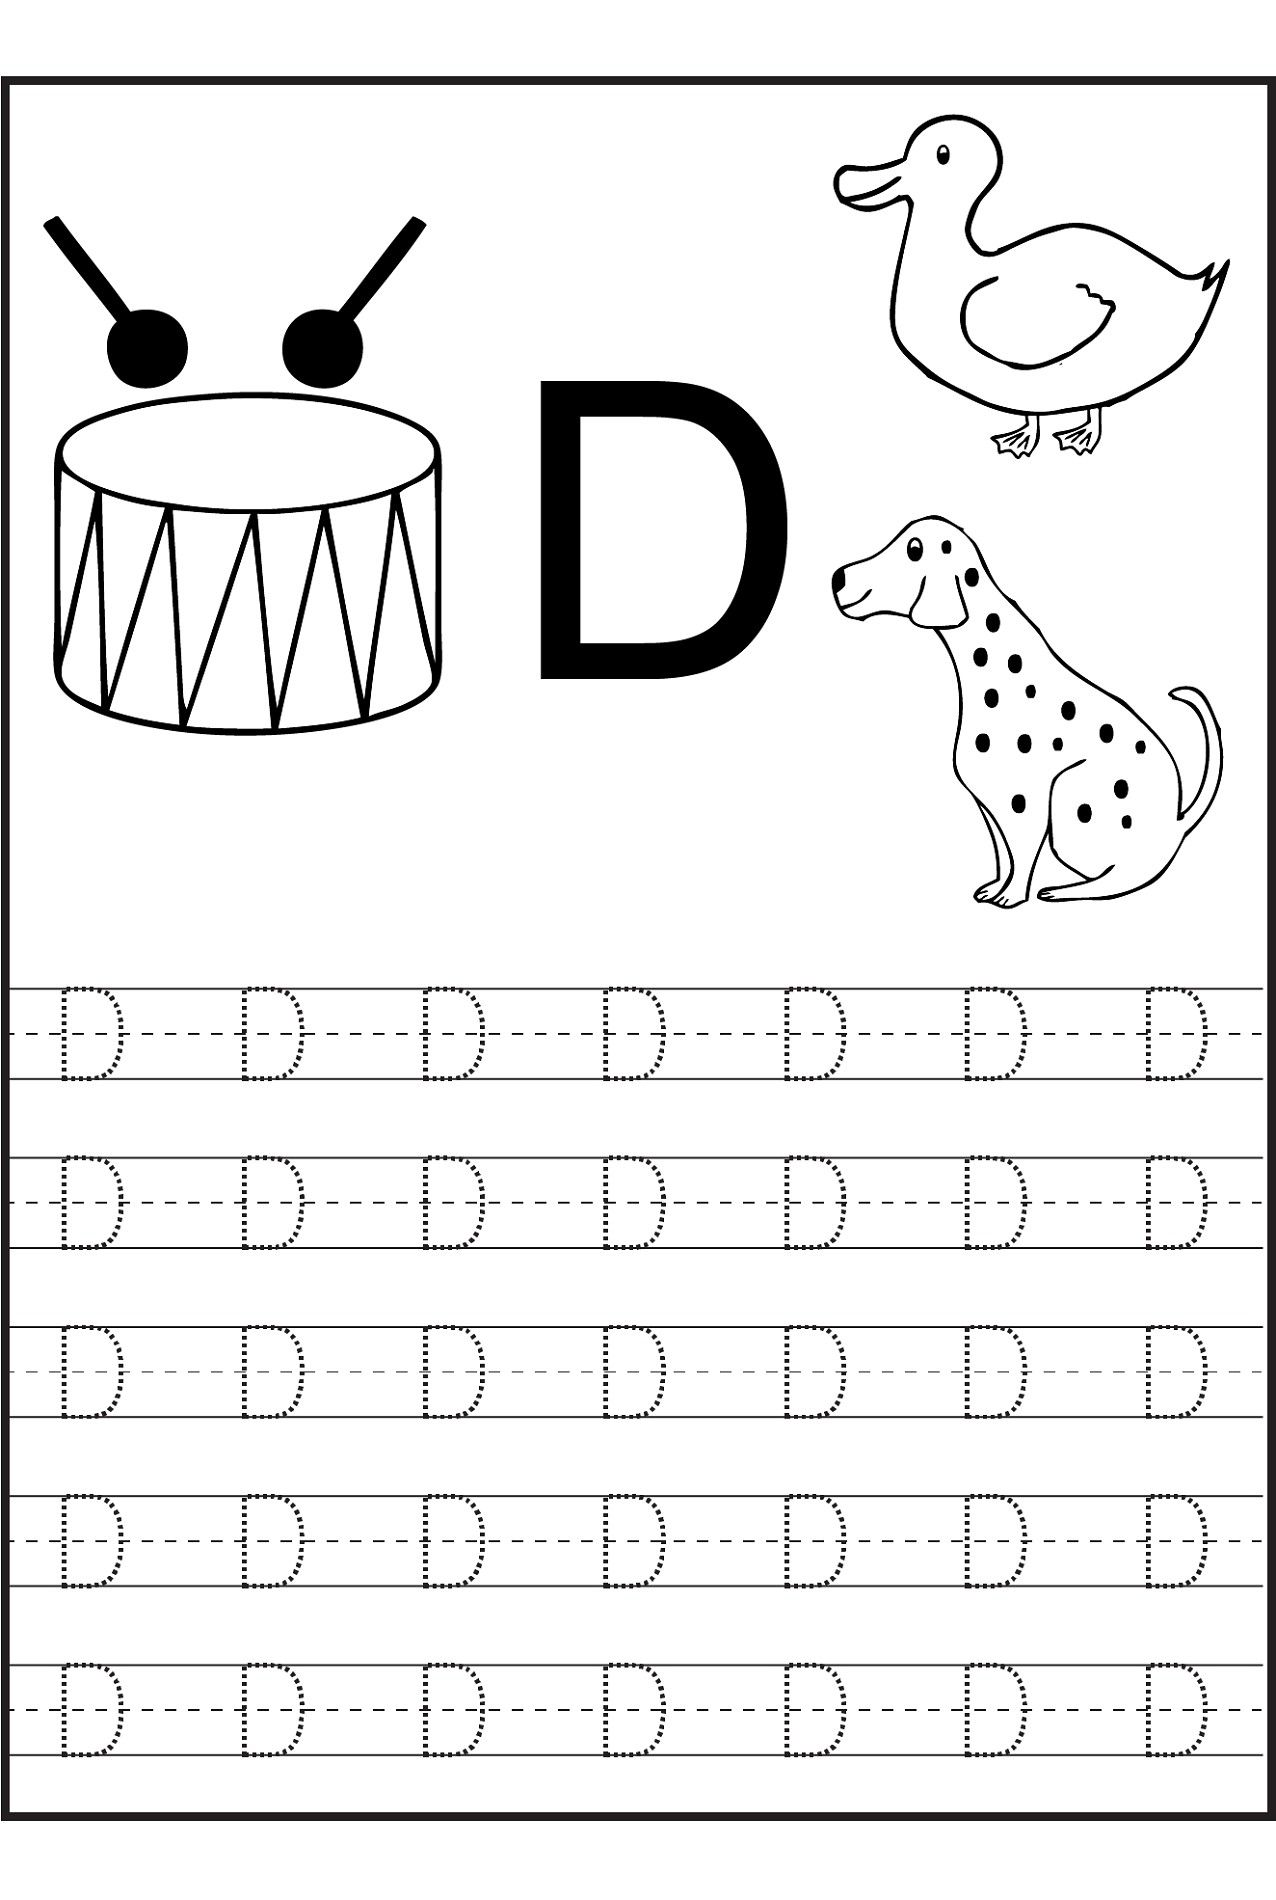 4 Worksheet Alphabet Worksheet For Nursery Class With